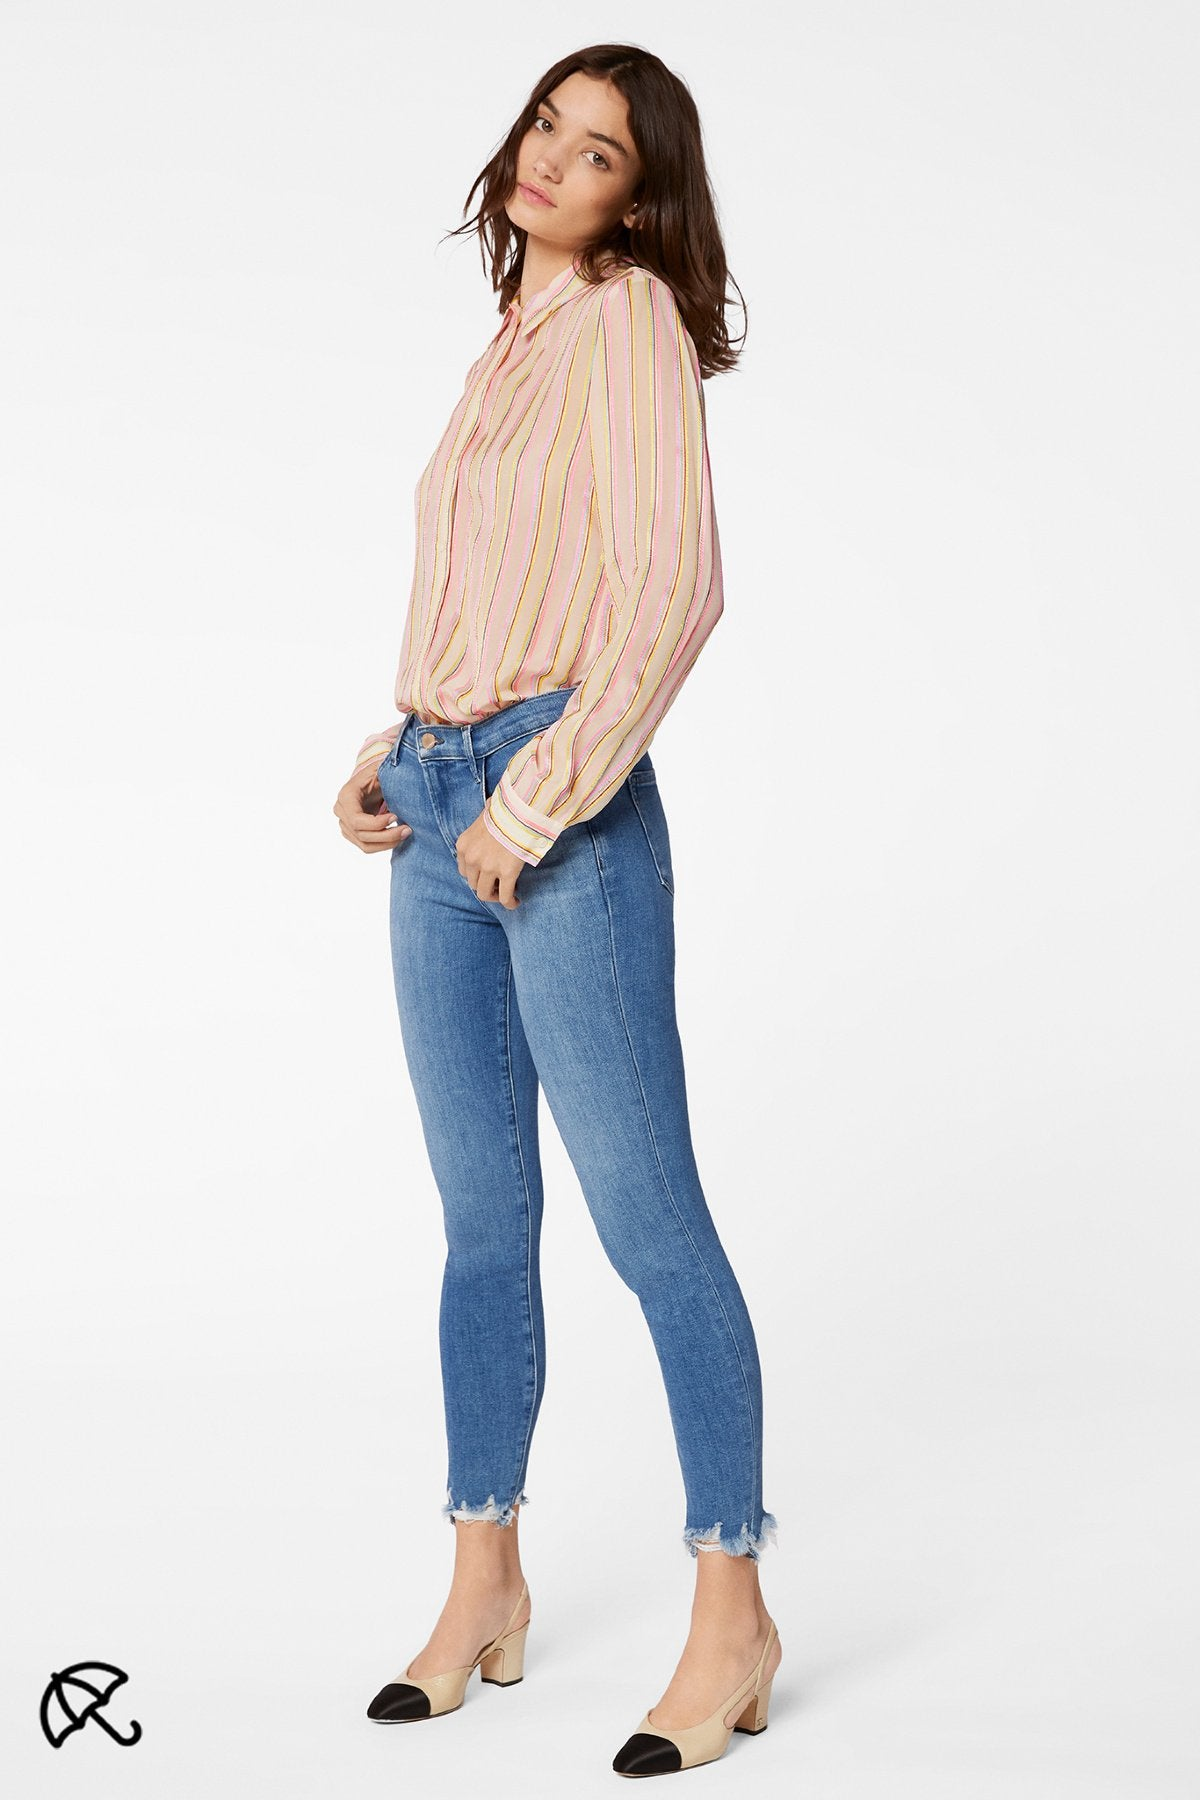 Edwards Imports Ltd Womens Jeans TRUELVDSTRCT / 24 J Brand | Alana High Rise Crop Skinny  - True Love Destruct